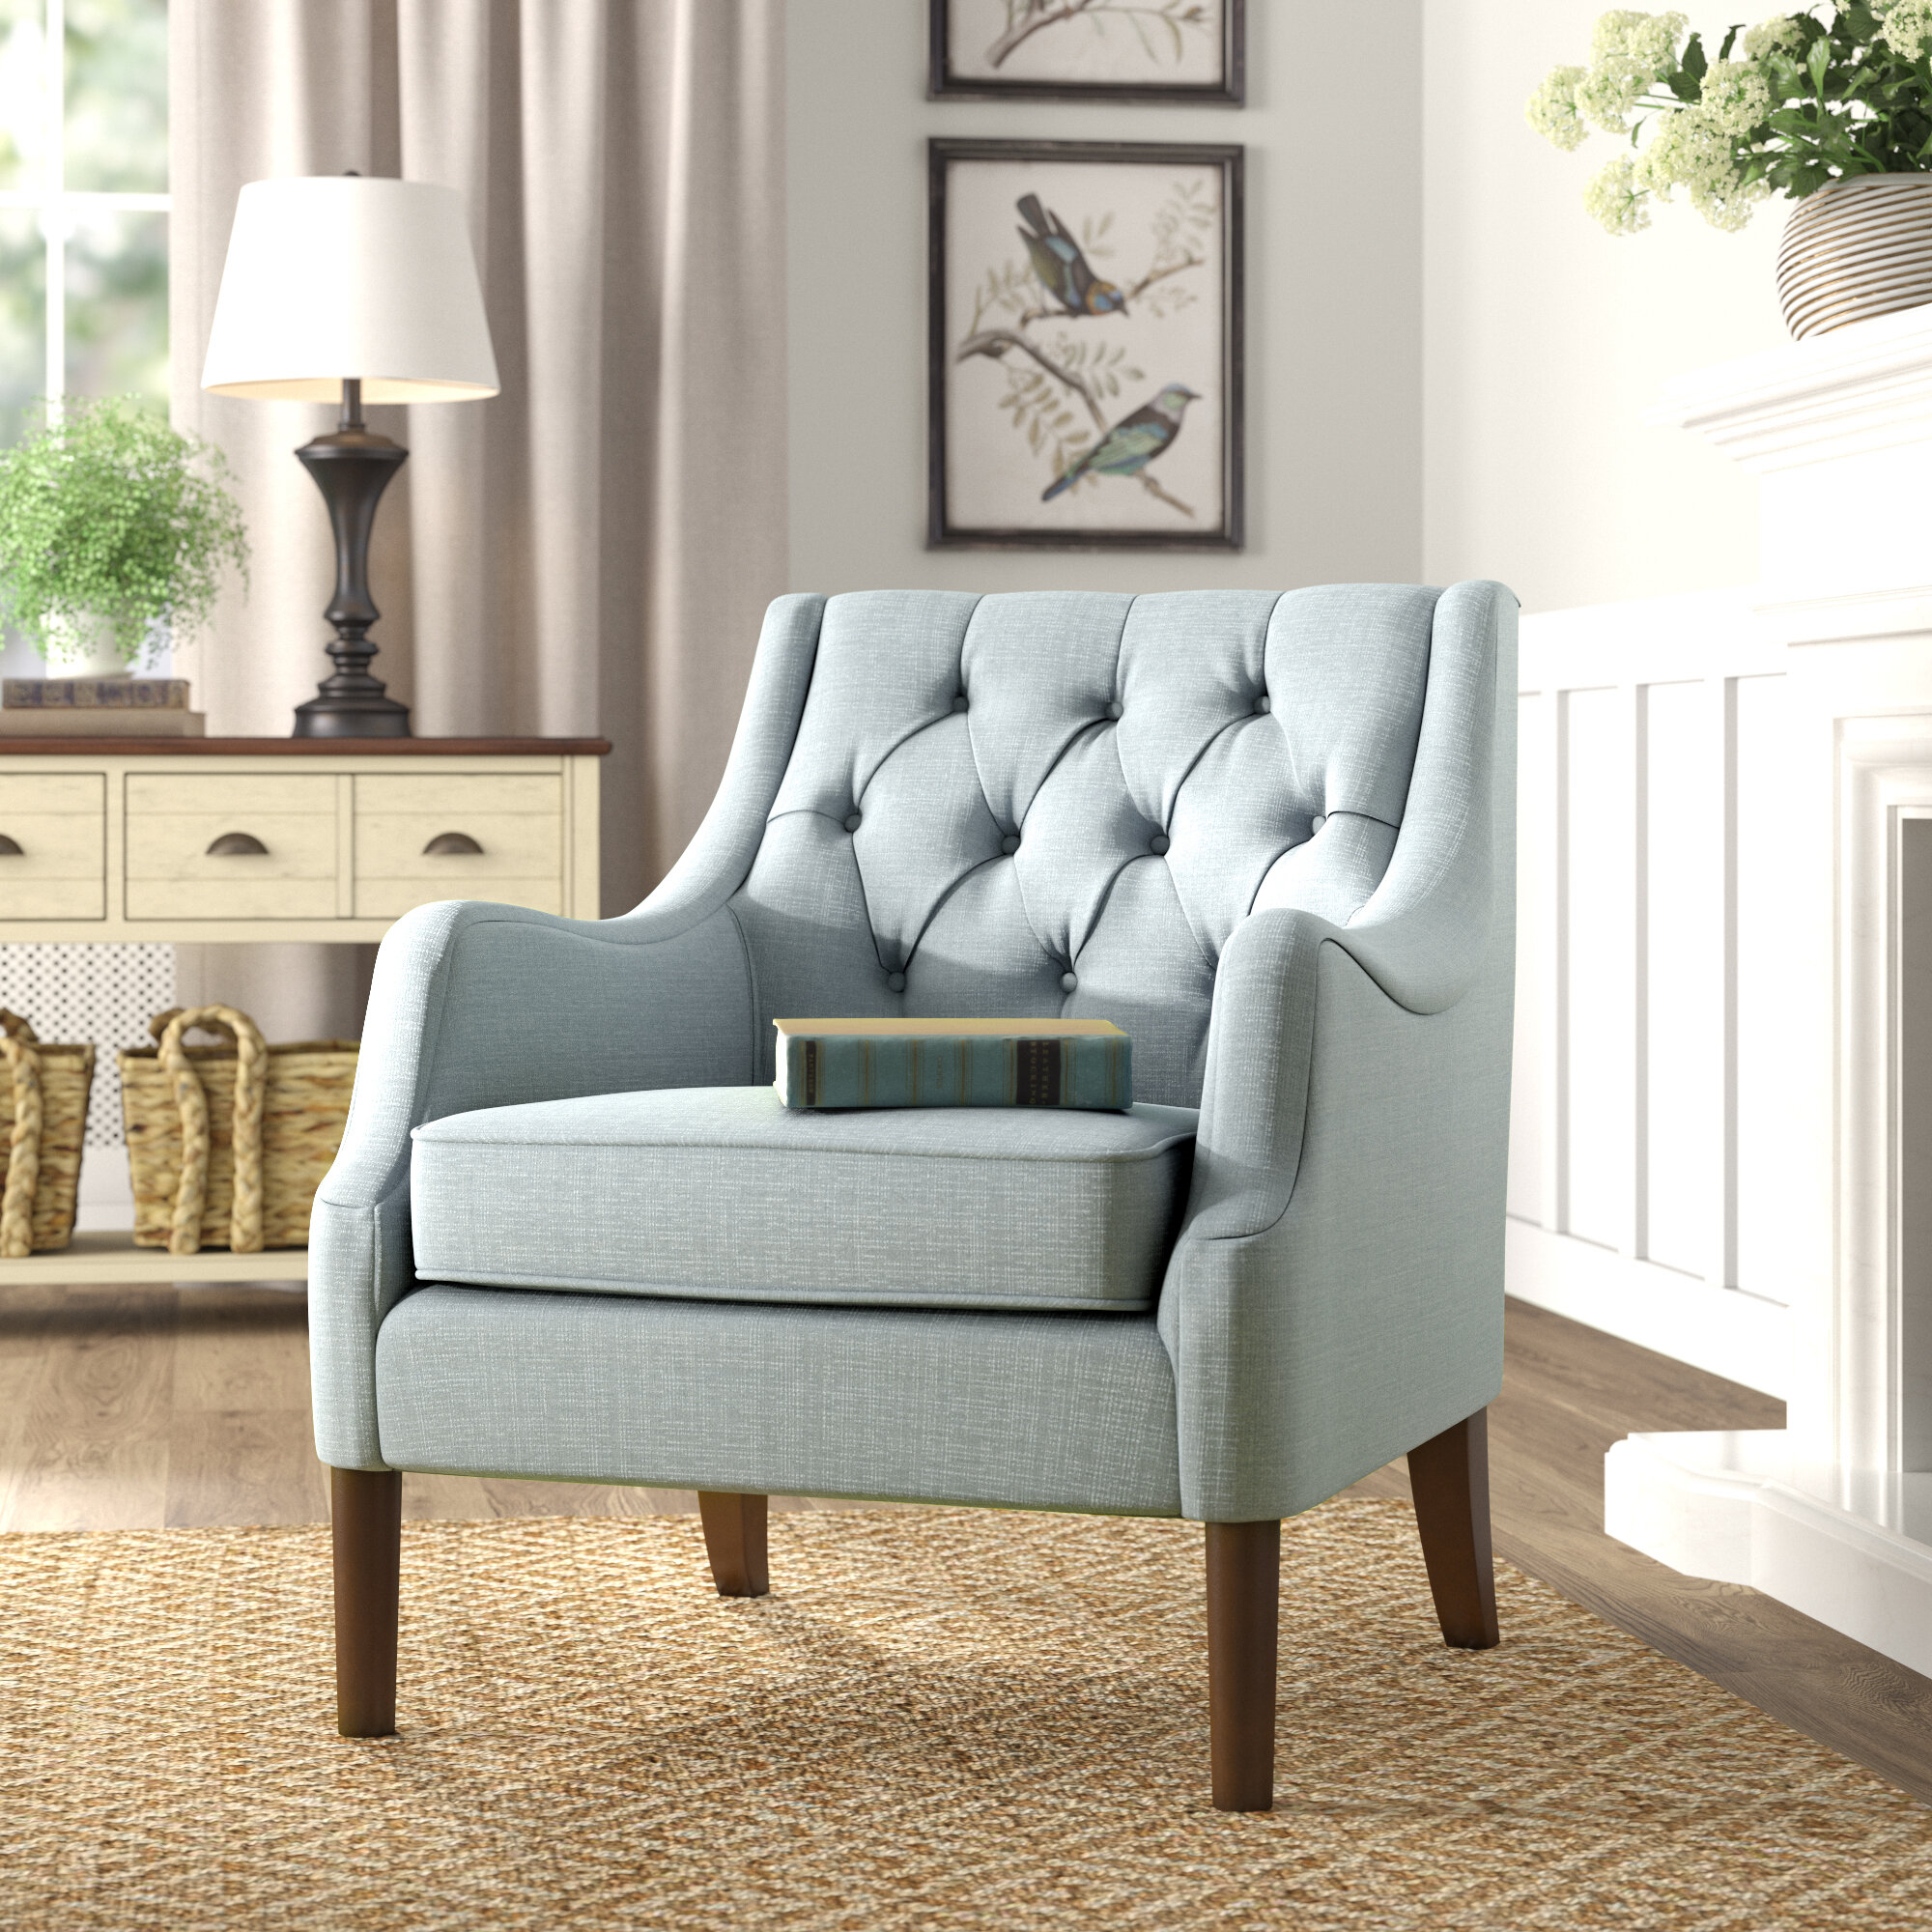 Featured Image of Galesville Tufted Polyester Wingback Chairs